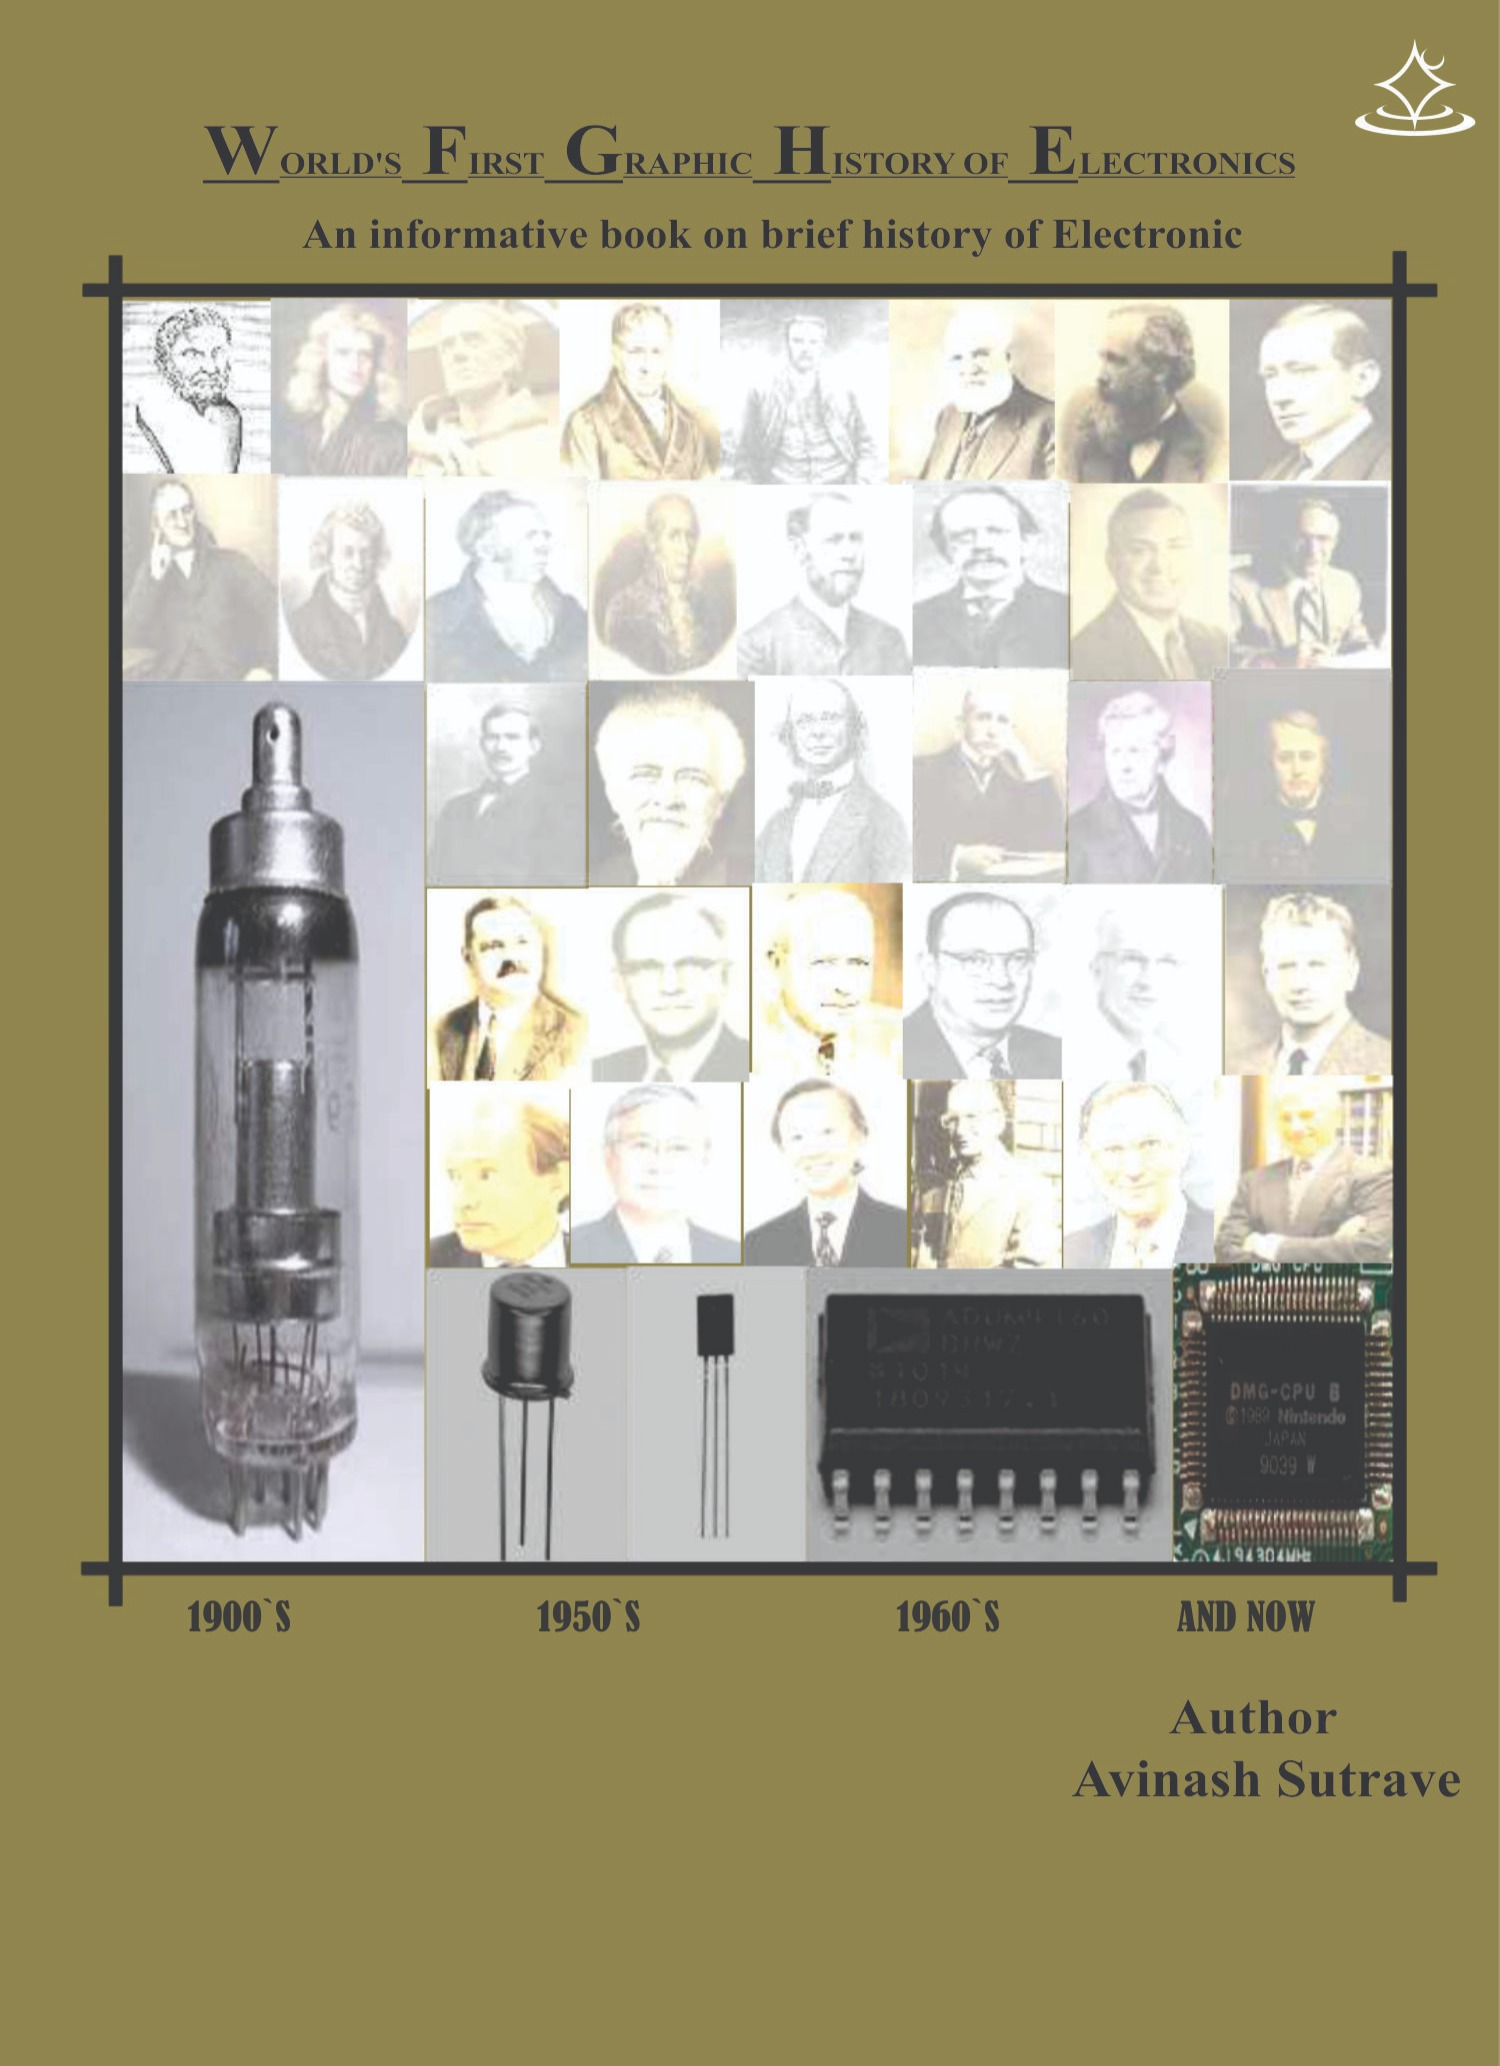 WORLD's FIRST GRAPHIC HISTORY OF ELECTRONICS